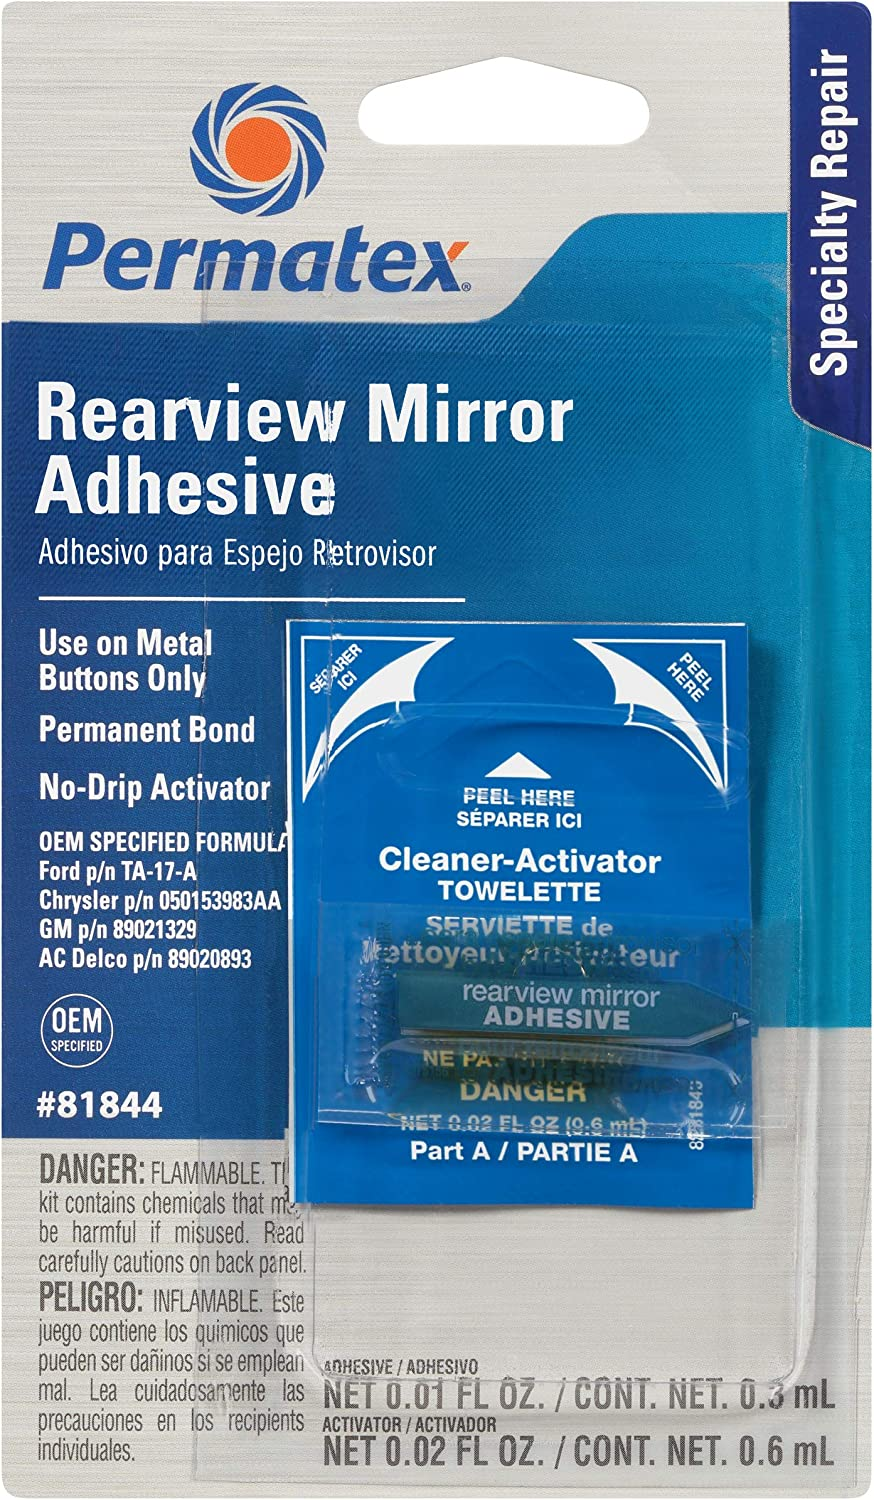 Permatex best rear view mirror glue